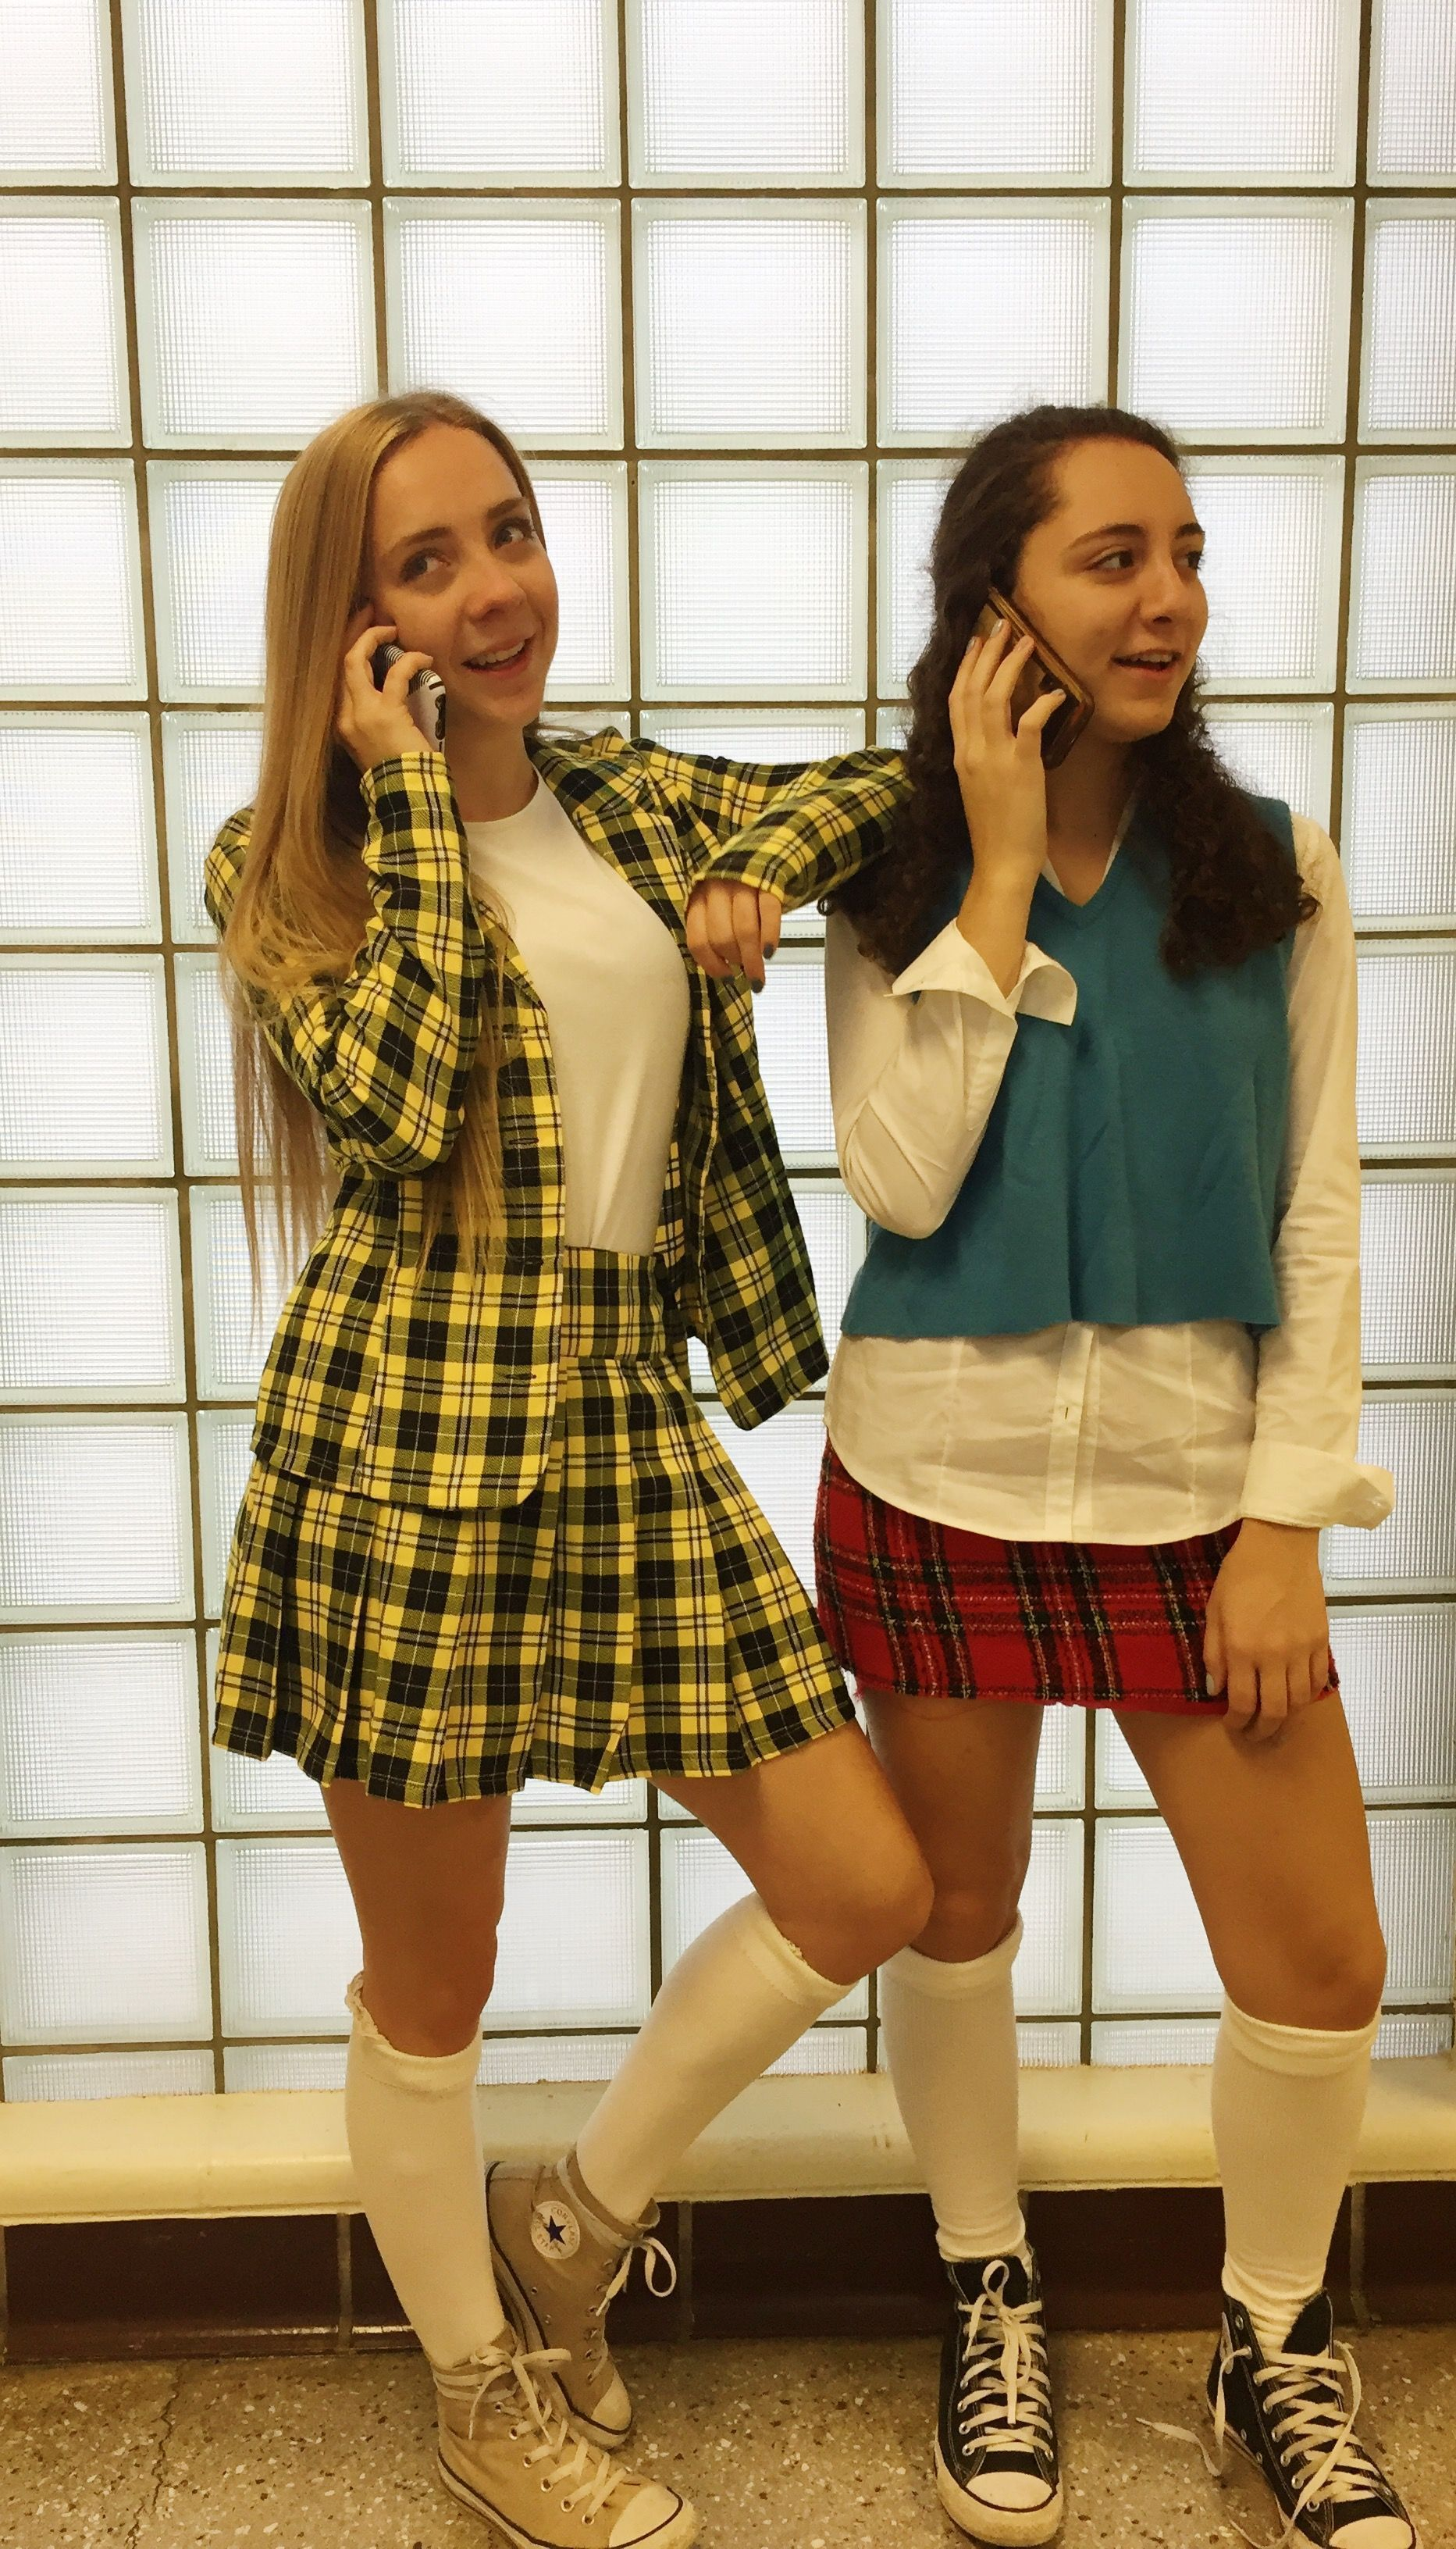 Clueless Costume  Spirit week: Character day #characterdayspiritweek Clueless Costume  Spirit week: Character day #characterdayspiritweek Clueless Costume  Spirit week: Character day #characterdayspiritweek Clueless Costume  Spirit week: Character day #characterdayspiritweek Clueless Costume  Spirit week: Character day #characterdayspiritweek Clueless Costume  Spirit week: Character day #characterdayspiritweek Clueless Costume  Spirit week: Character day #characterdayspiritweek Clueless Costume #characterdayspiritweek